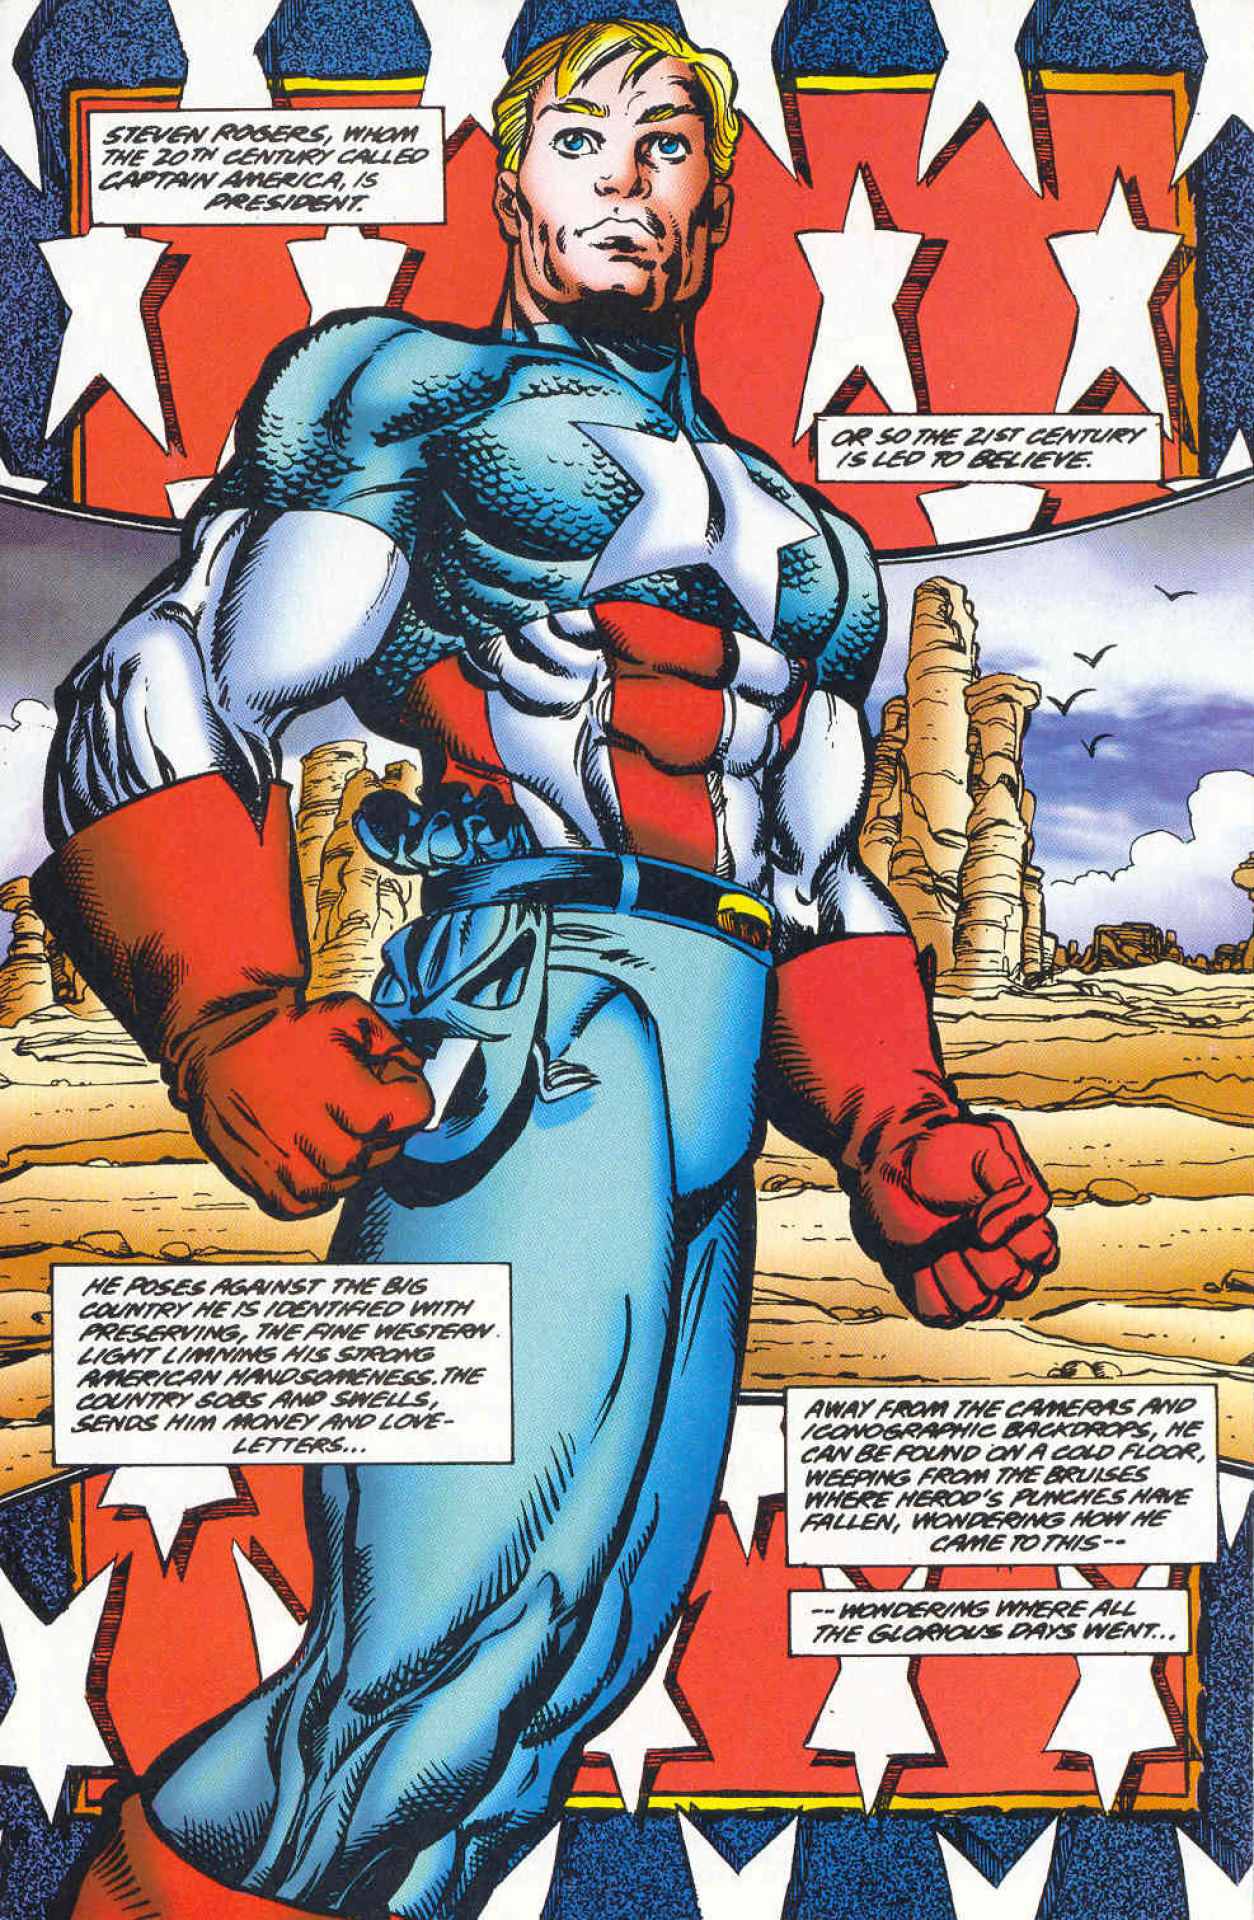 Captain America 2099 screenshots images and pictures   Comic Vine 1254x1920